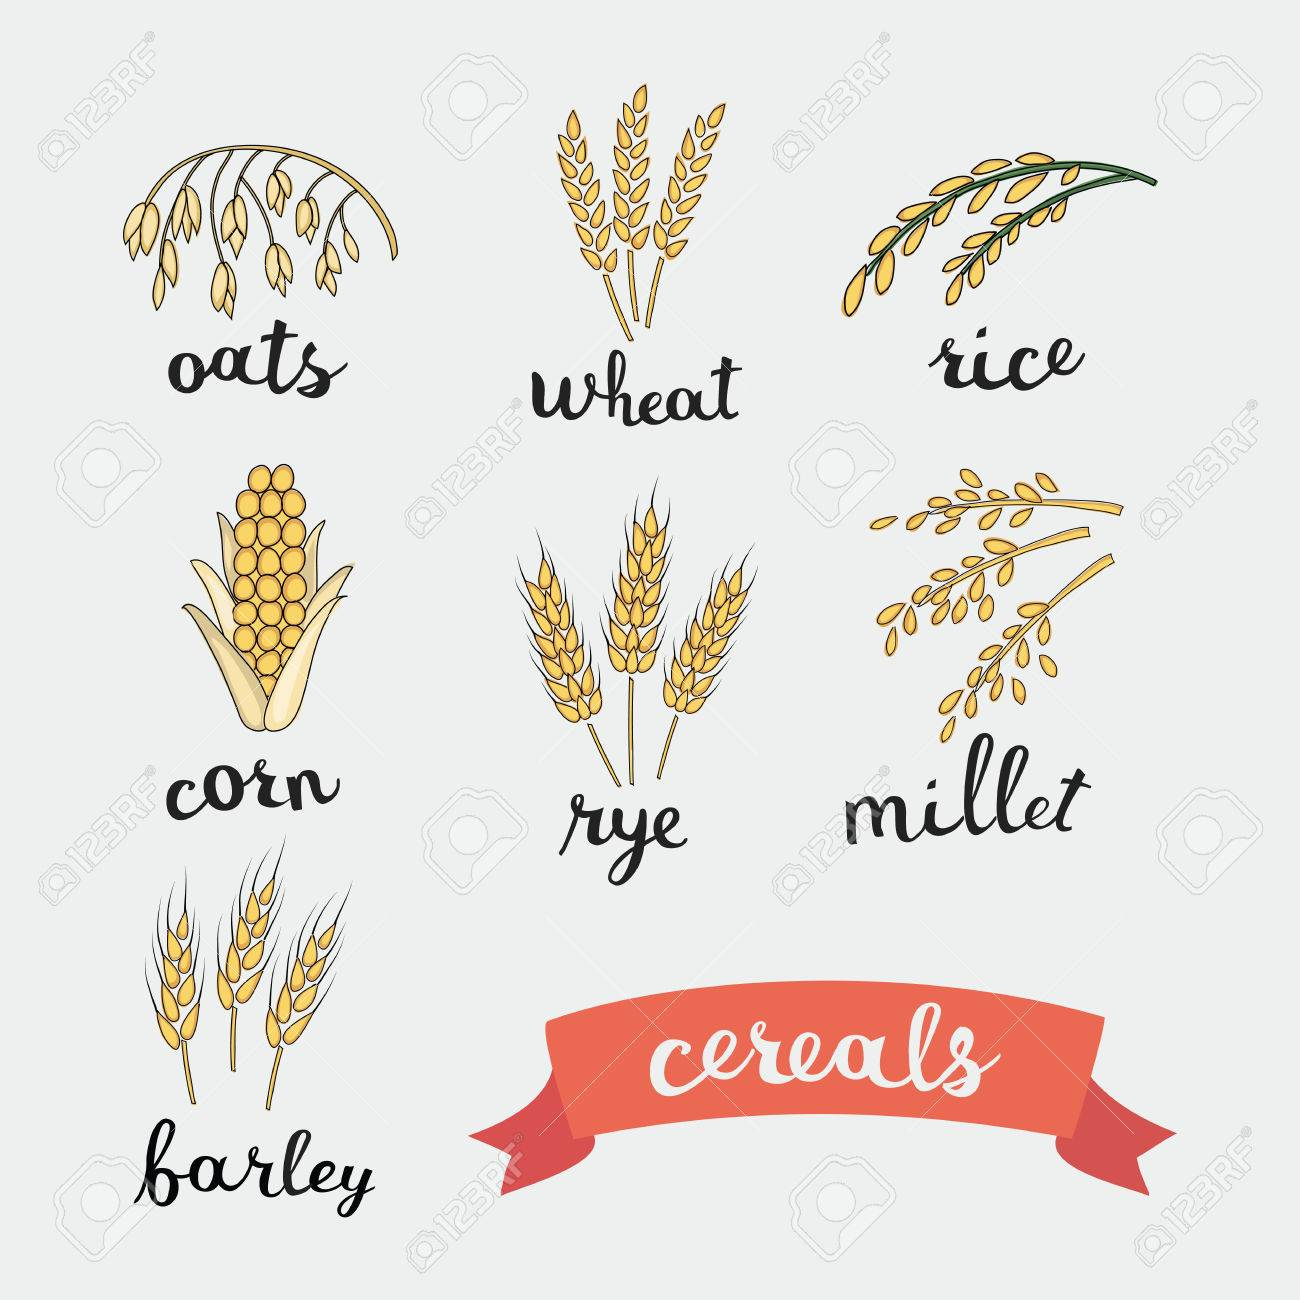 Vector illustration of ripe ears of cereals with inking and lettering names in English - 53261844